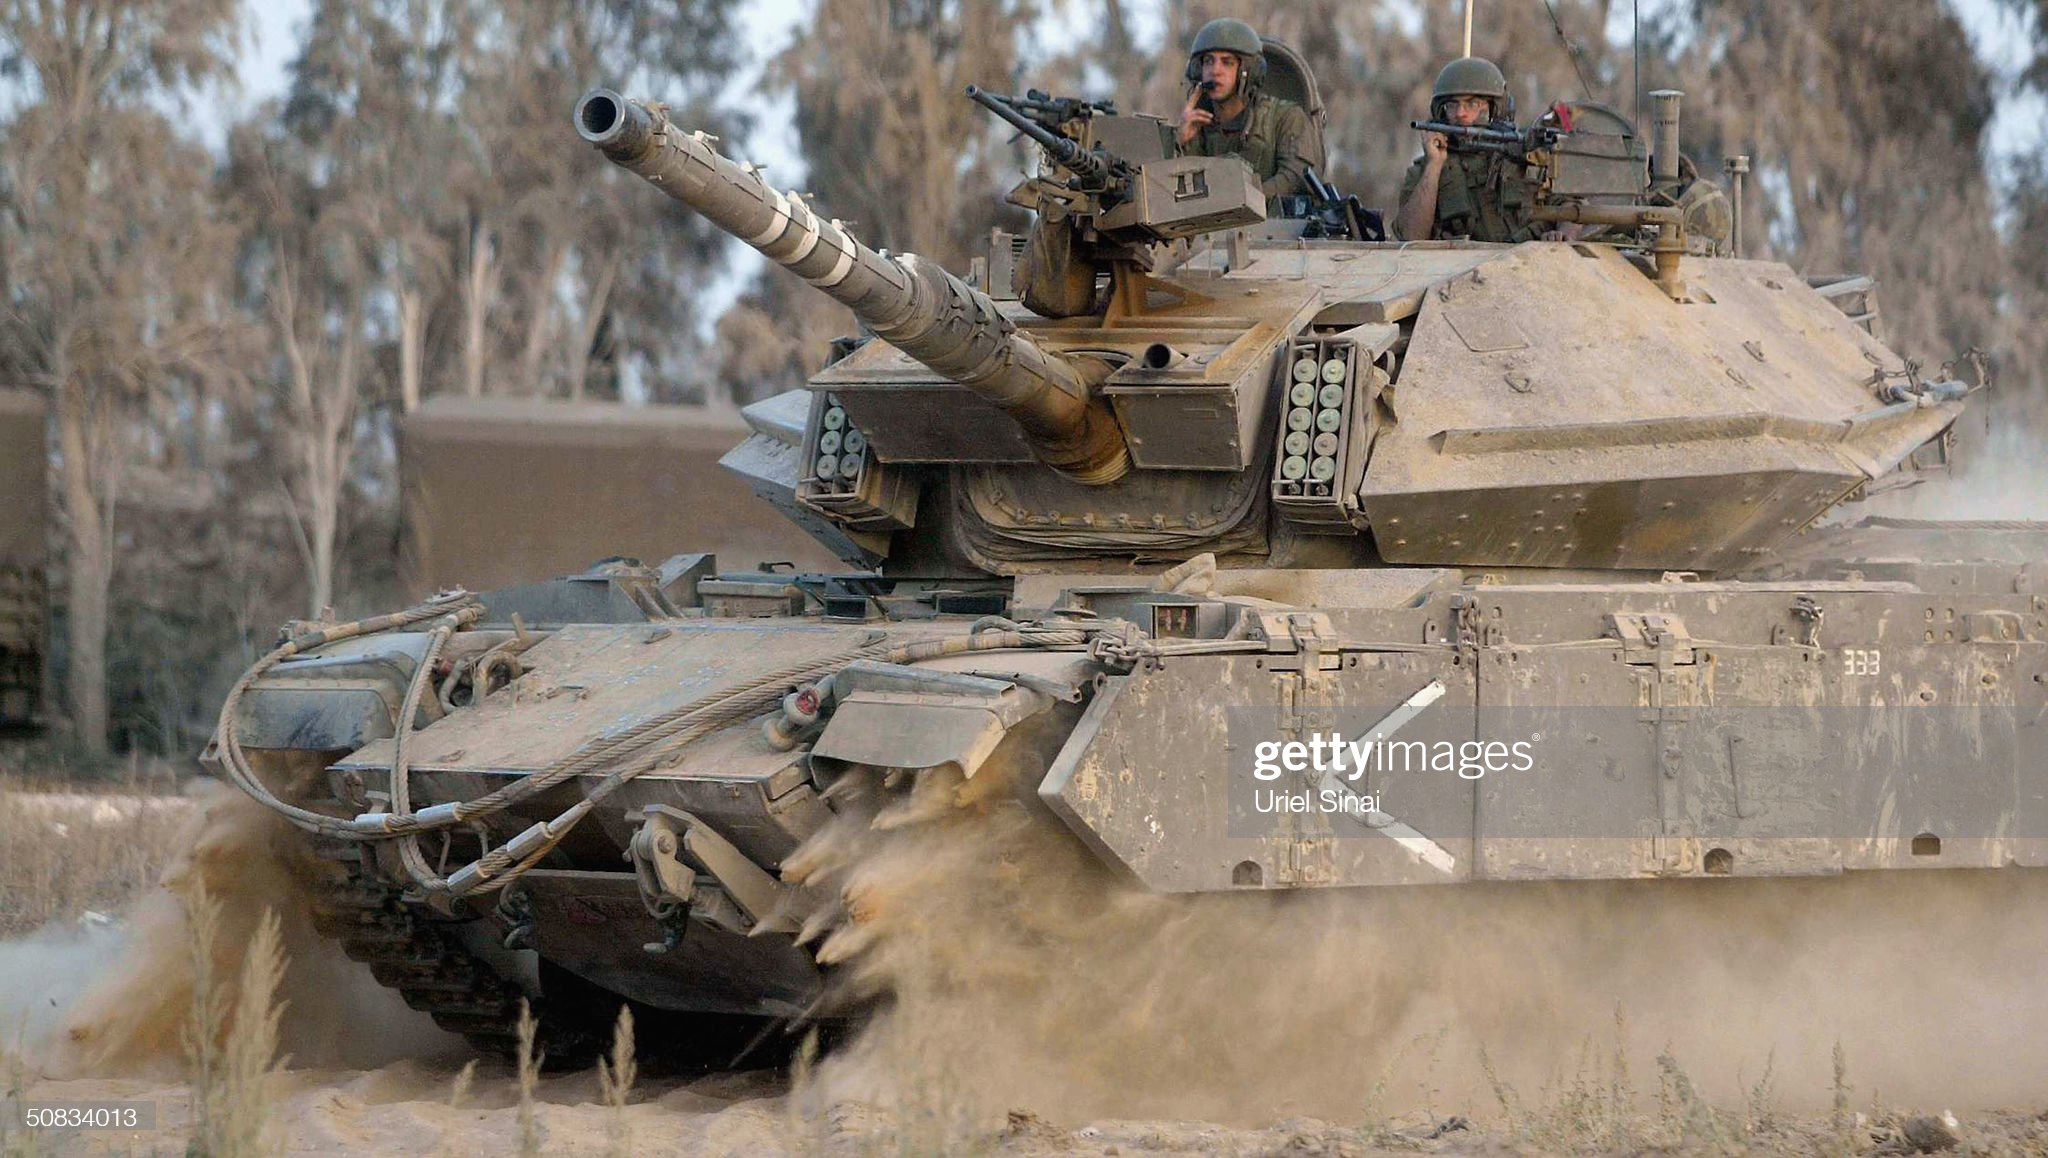 https://media.gettyimages.com/photos/an-israeli-soldier-prepares-merkeva-tanks-on-may-13-2004-at-the-suffa-picture-id50834013?s=2048x2048